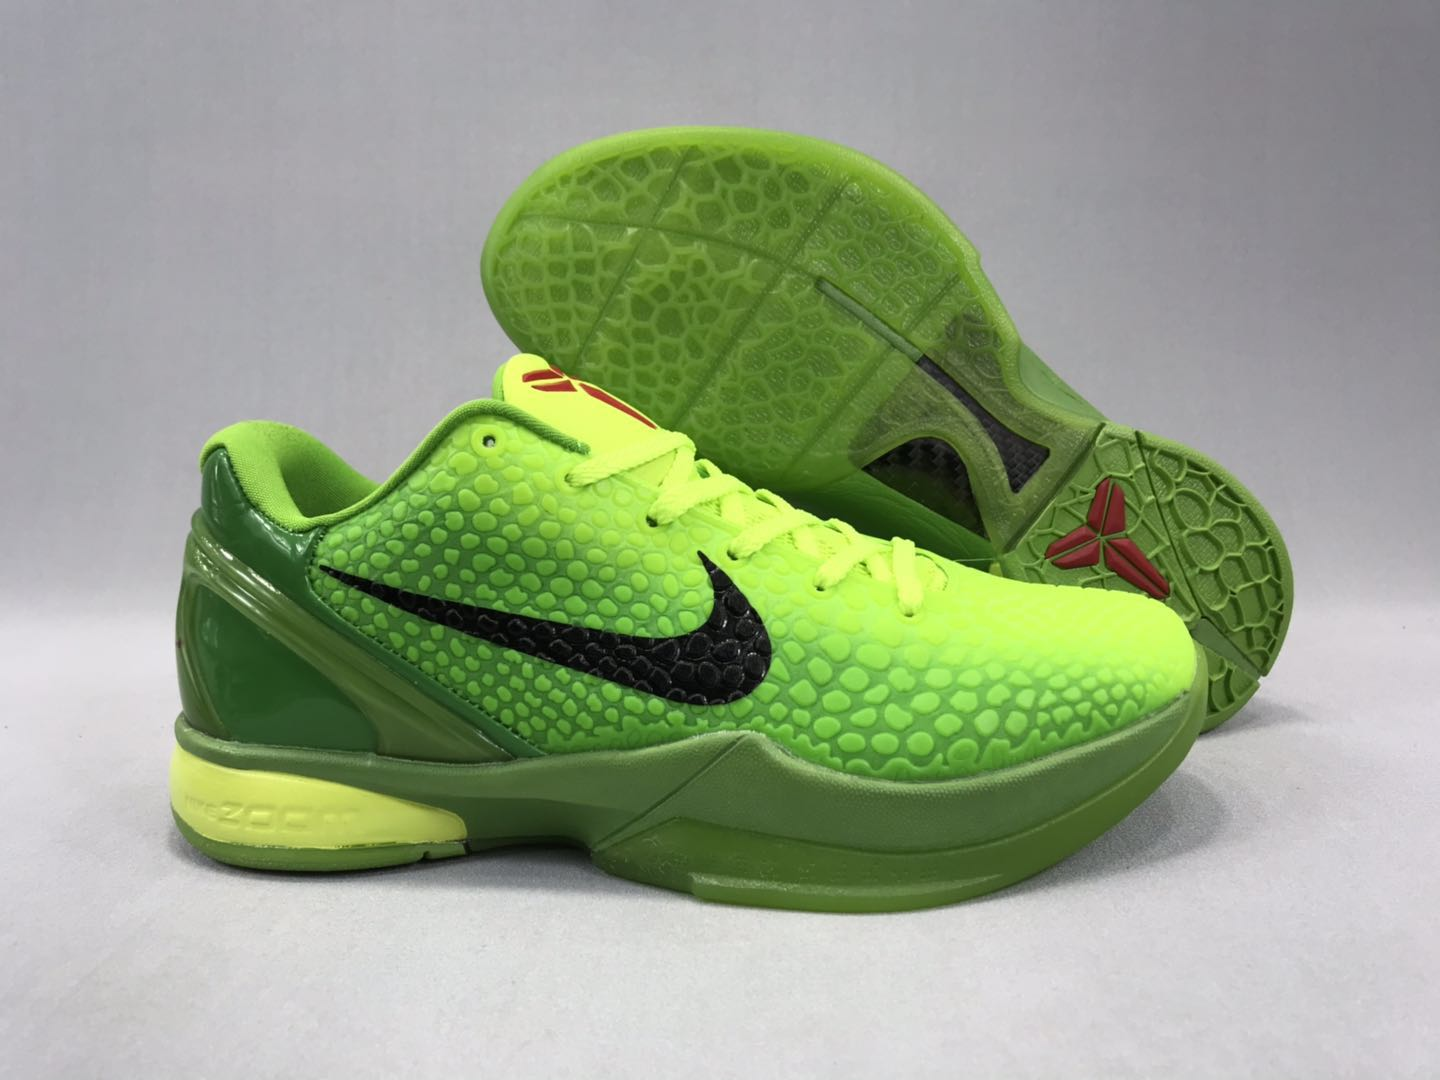 New-release Nike Kobe 8 Christmas Green Black Shoes